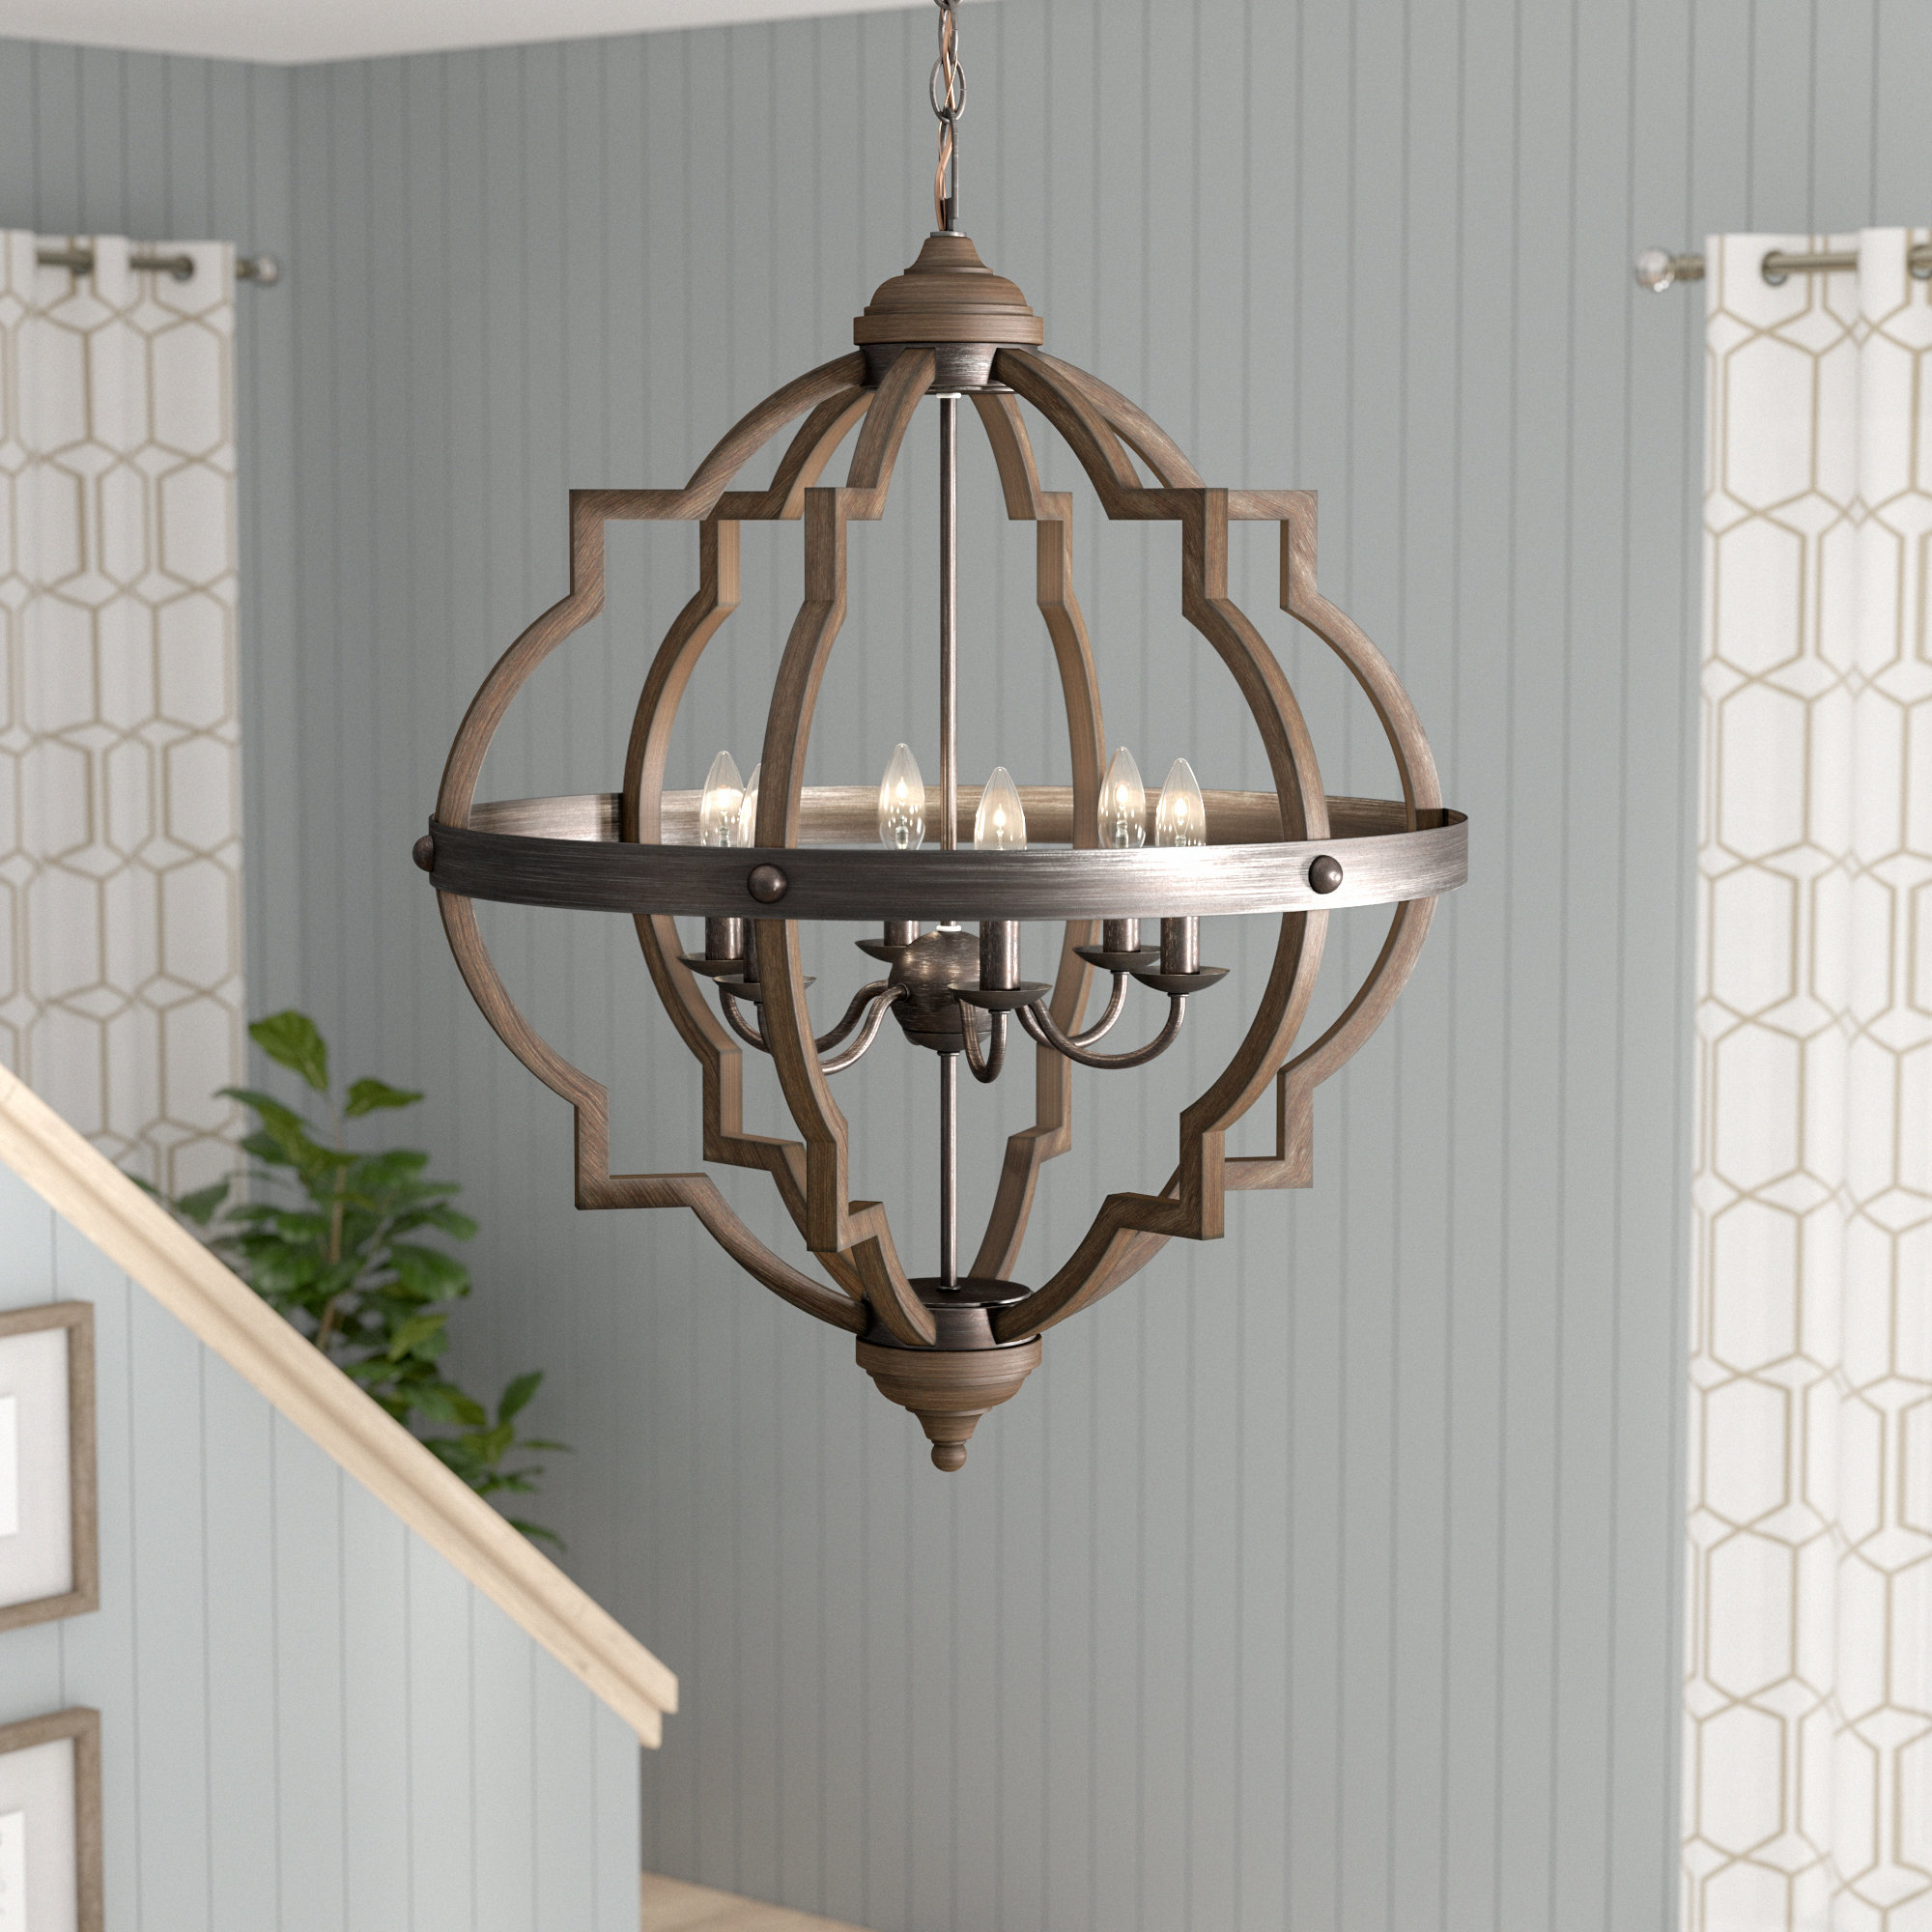 Bennington 6-Light Candle Style Chandelier intended for Current Bennington 6-Light Candle Style Chandeliers